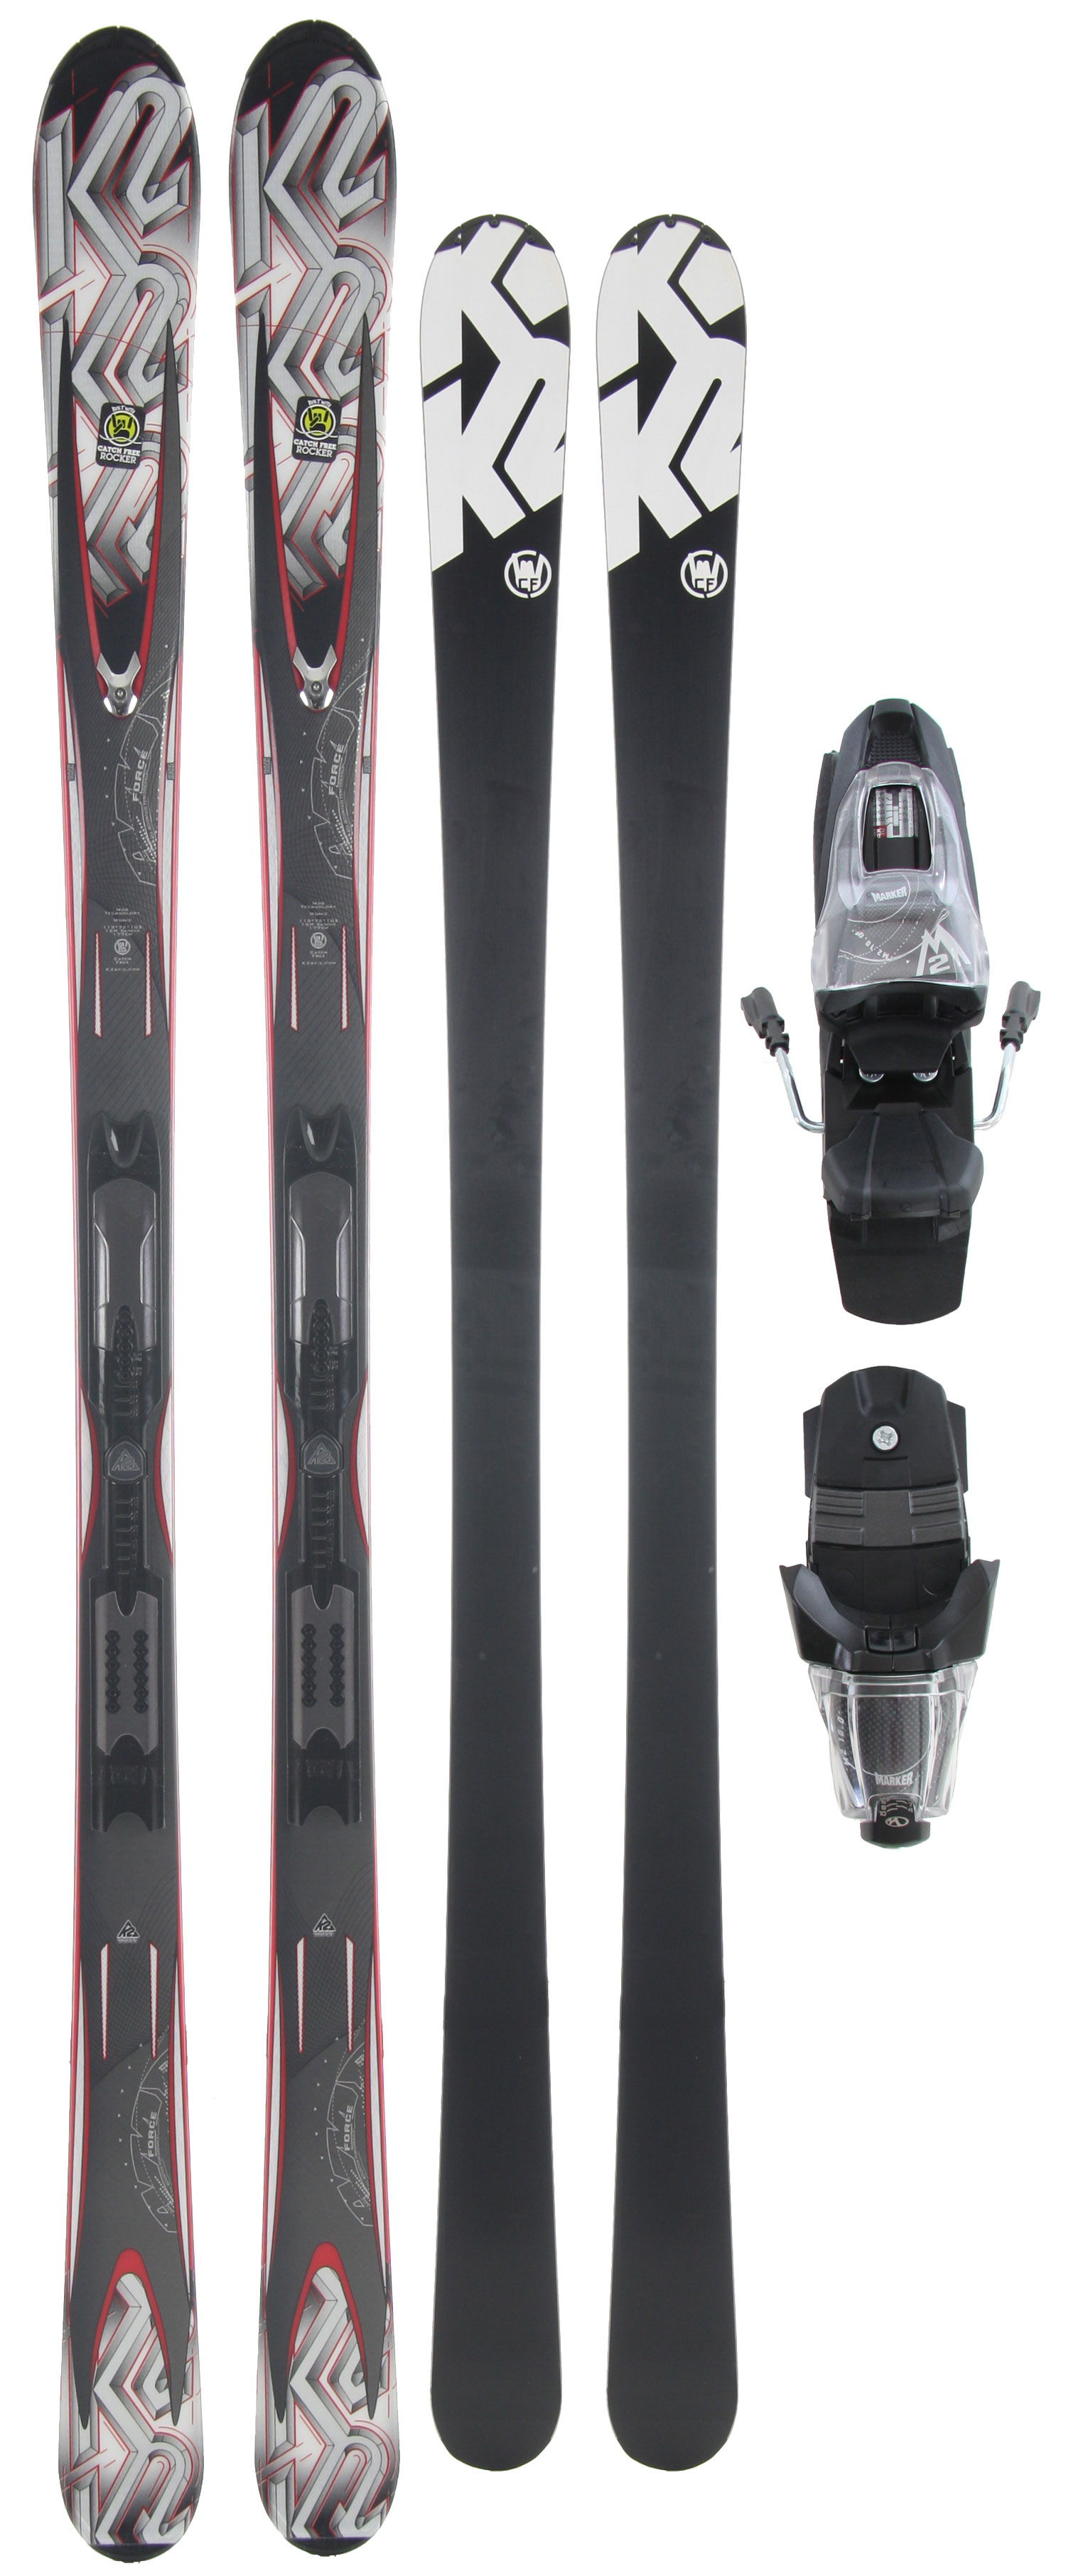 Ski The 2010-11 A.M.P. Force features Catch-Free Rocker technology, which enables the ski to become more maneuverable in and out of the turn but solid and powerful in the middle of the turn for added confidence and control. Geared towards newer or advancing skiers, the additional ease and forgiveness offered by this profile design makes learning to ski easier than ever. The K2 Force is also built with a lightweight composite core that adds to the maneuverability of the ski with a forgiving flex profile focused on ease and fun.Key Features of the K2 A.M.P. Force Skis w/ M2 10.0 Q Bindings: Performance: Groomed, 70%; Ungroomed, 30% Sizes: 149, 156, 163, 170, 177 Radius: 14m@170 Construction: Torsion Box Cap Core: Composite - $297.95